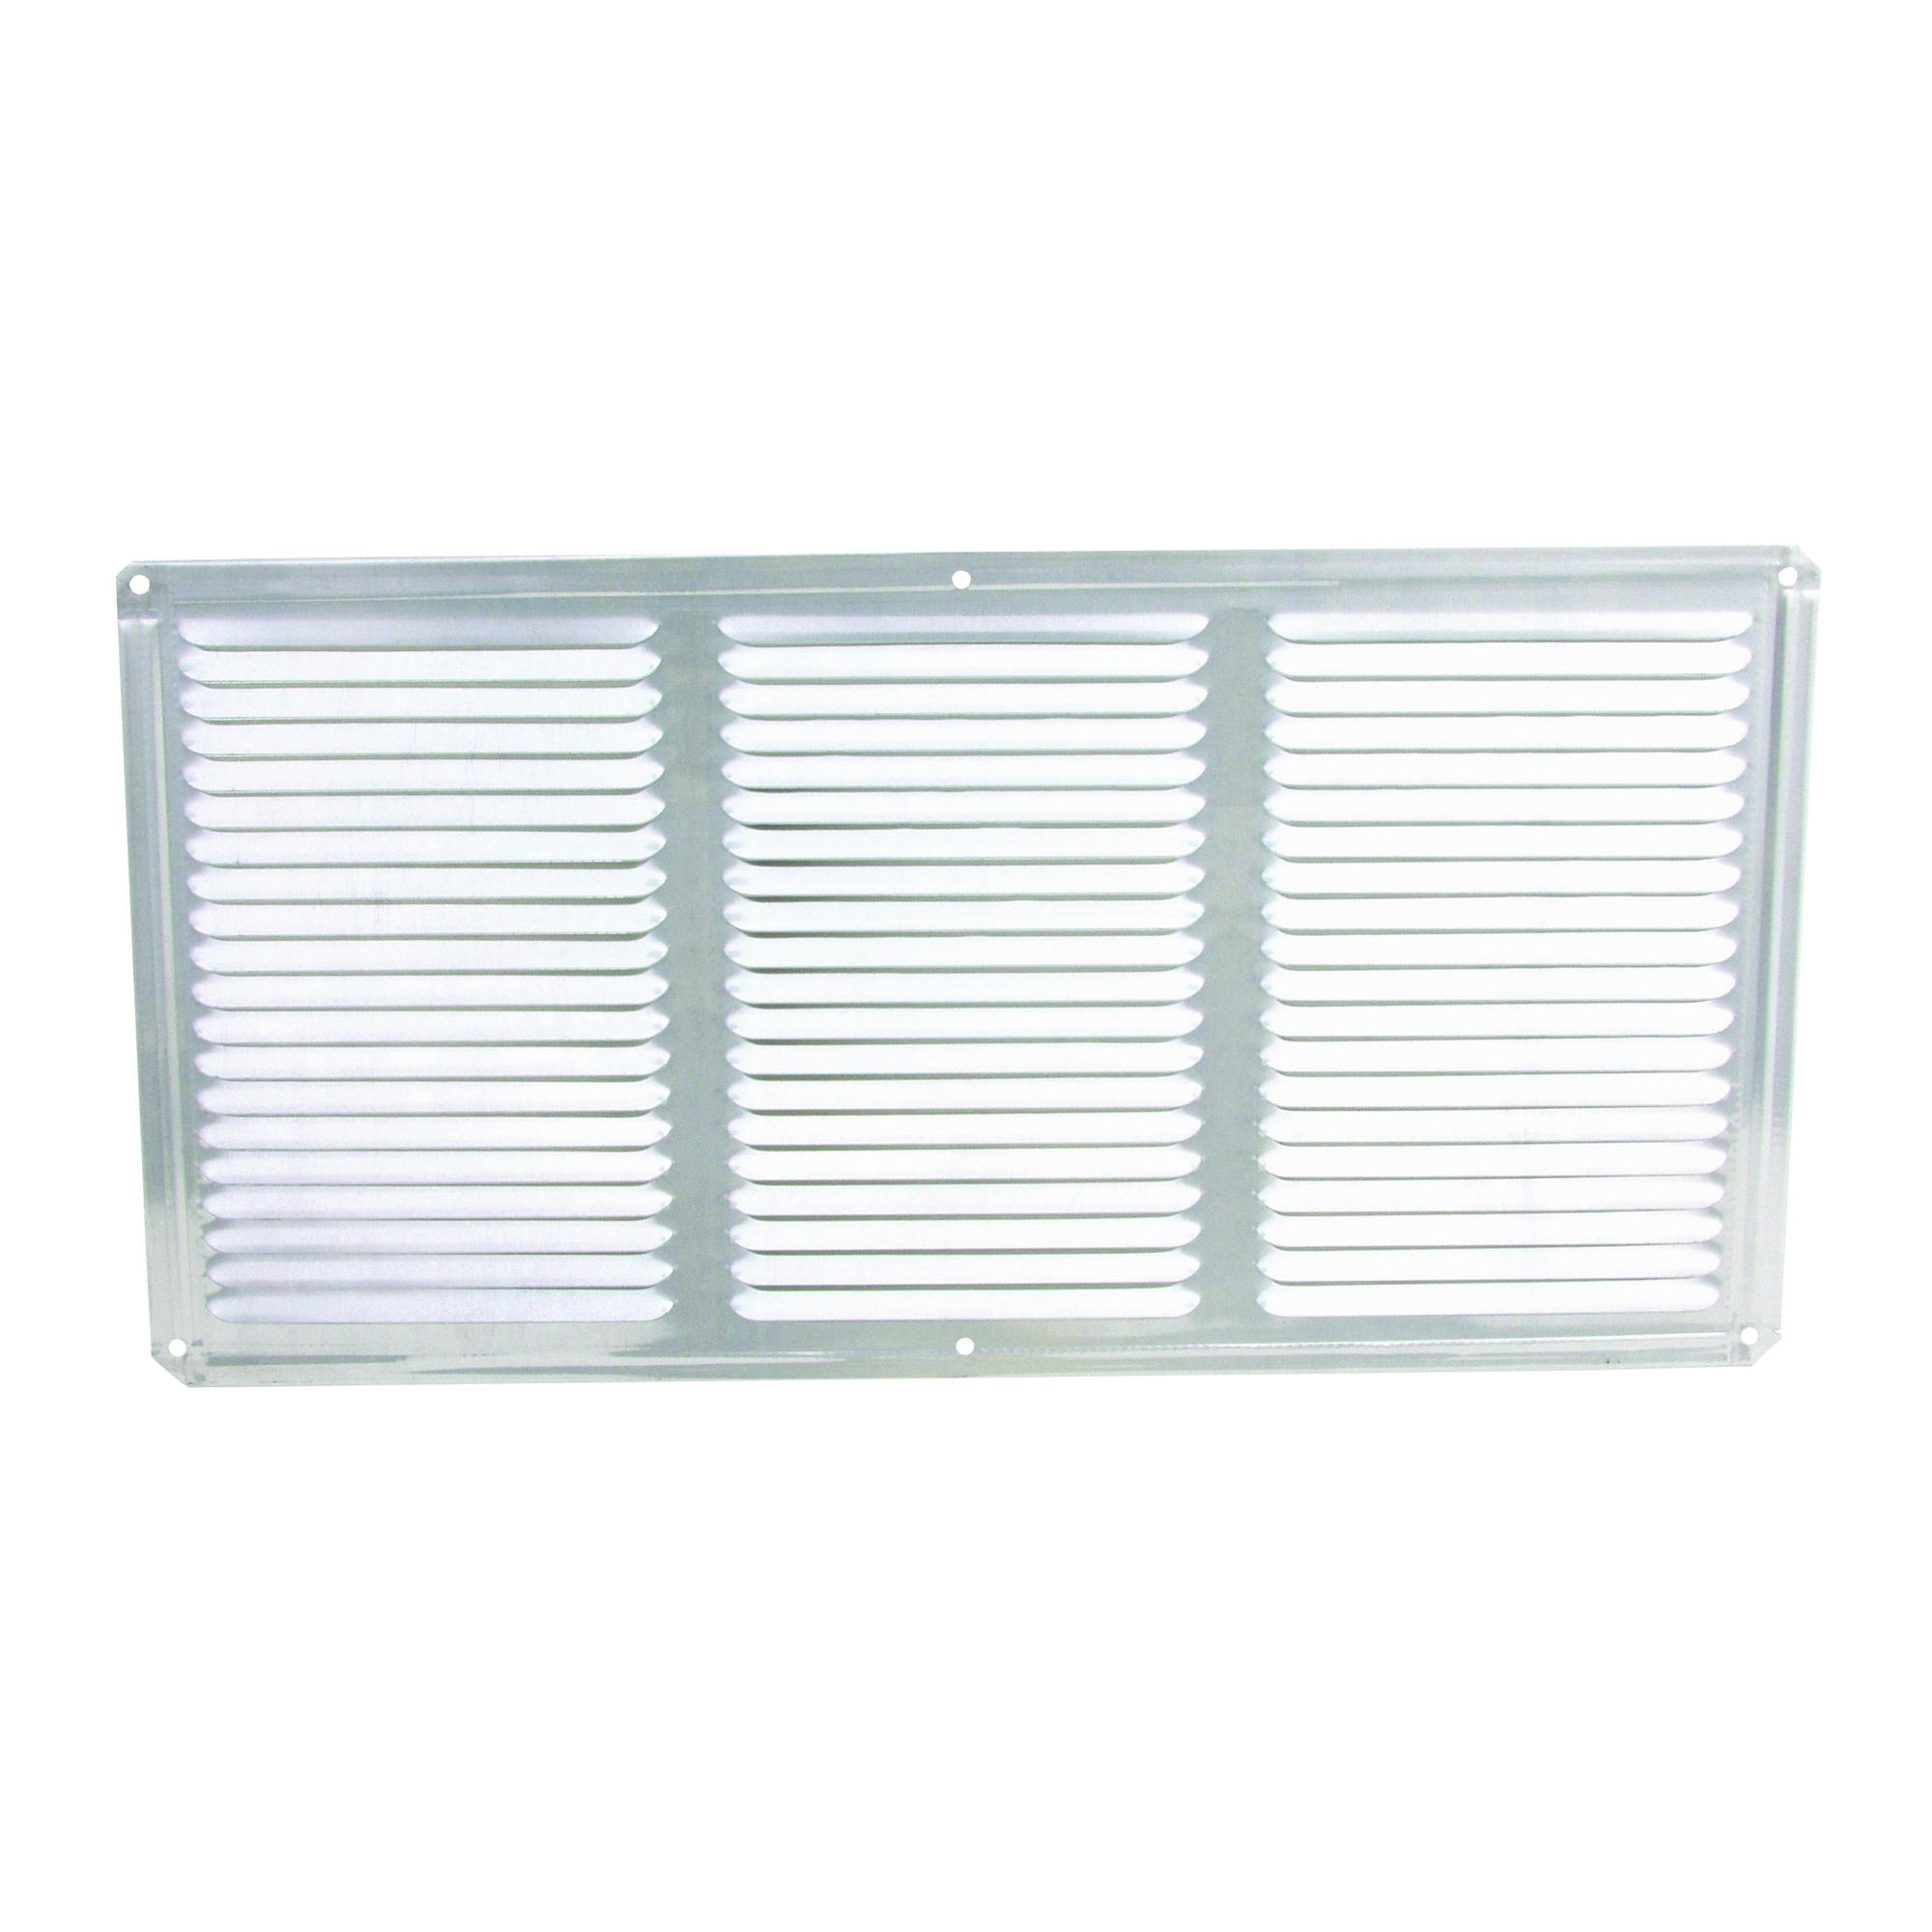 Picture of Master Flow EAC16X8 Undereave Vent, 8 in L, 16 in W, 65 sq-ft Net Free Ventilating Area, Aluminum, Mill